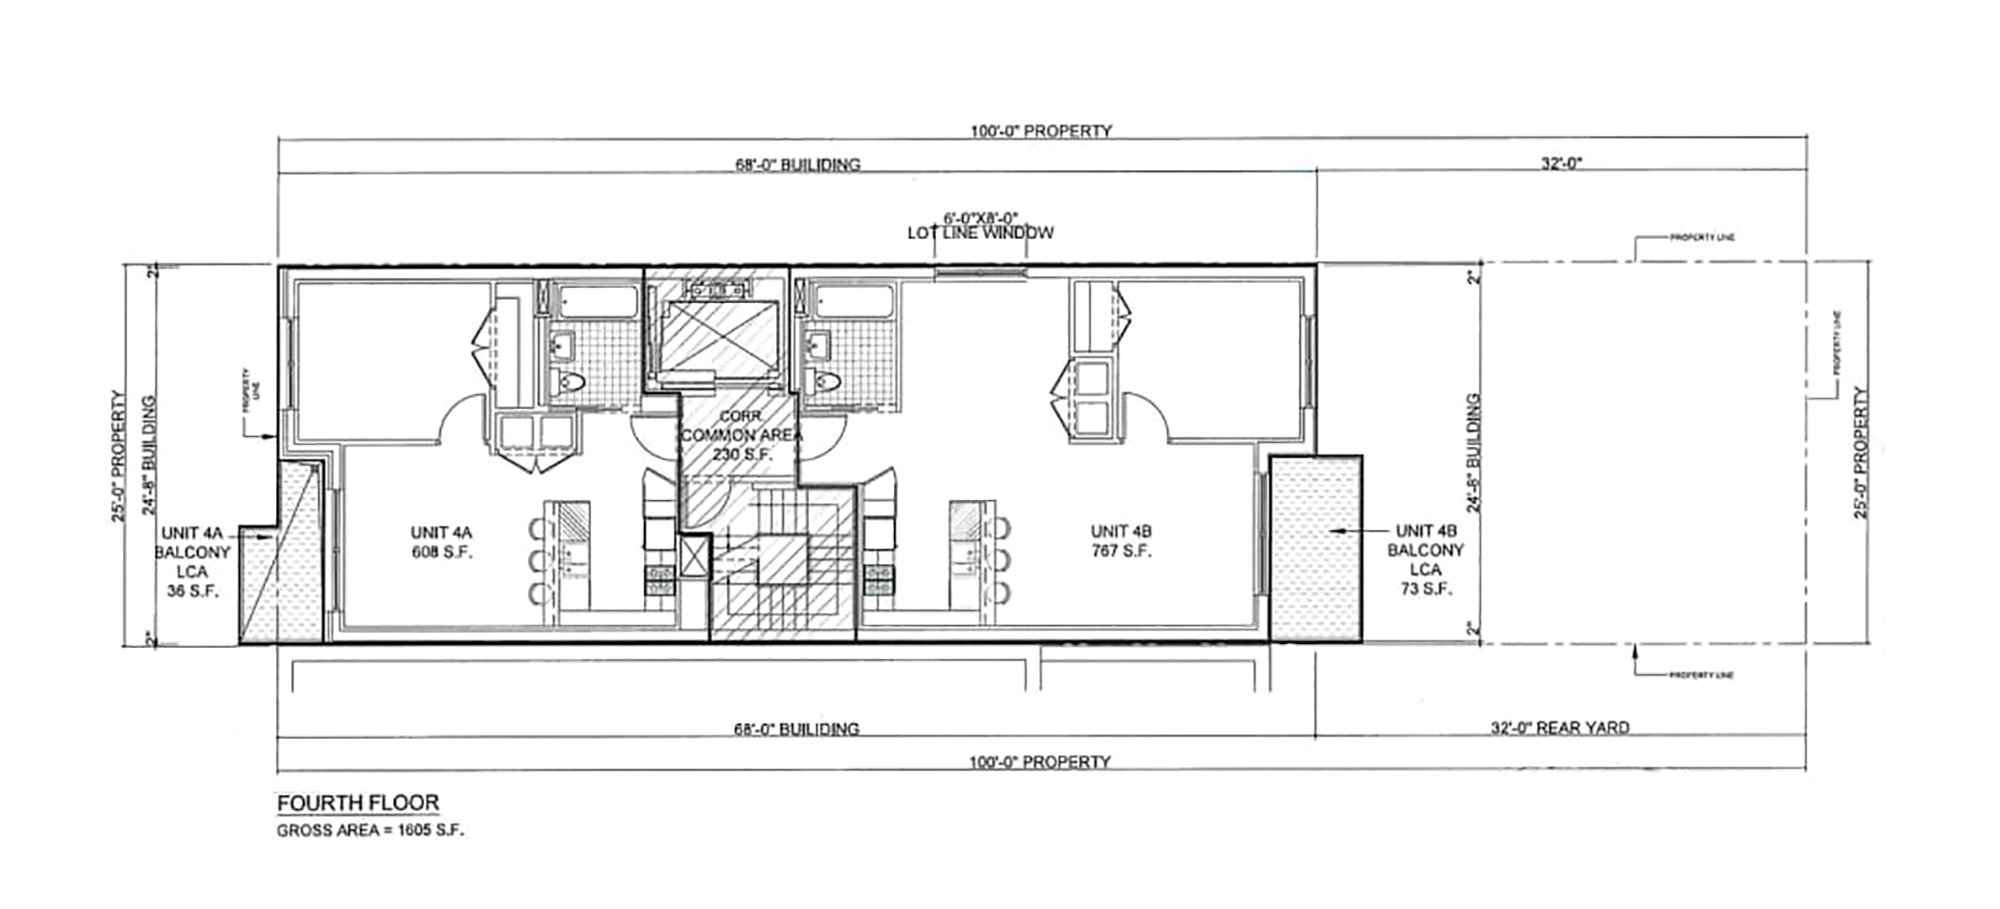 Floor Plan - 4th Floor